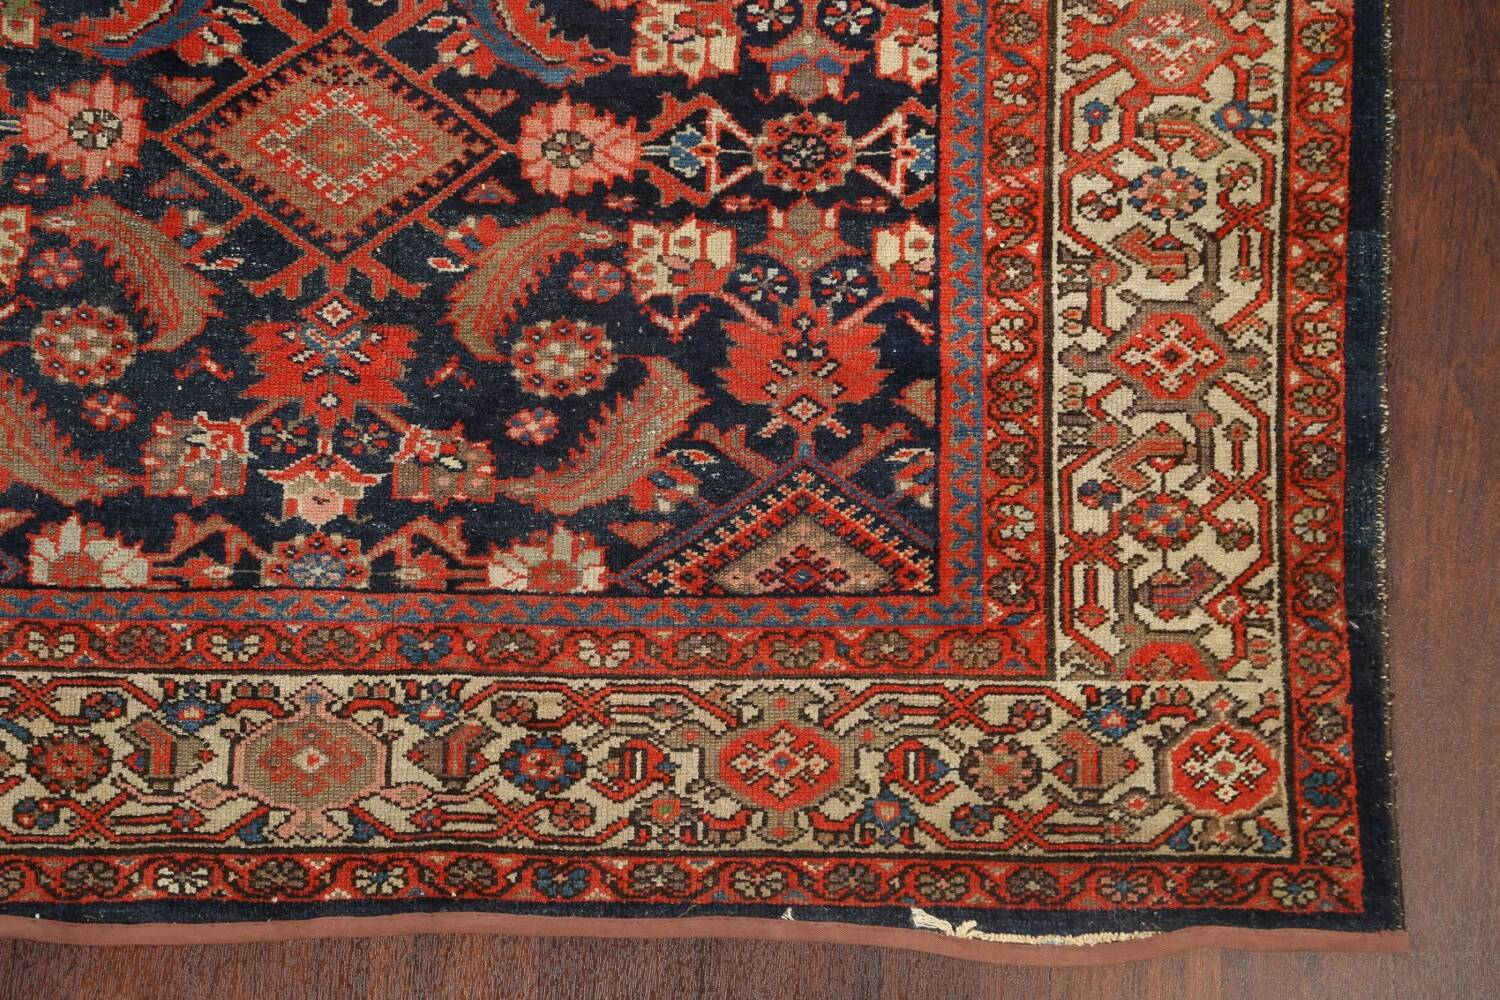 Pre-1900 Antique Vegetable Dye Malayer Persian Rug 5x12 image 6